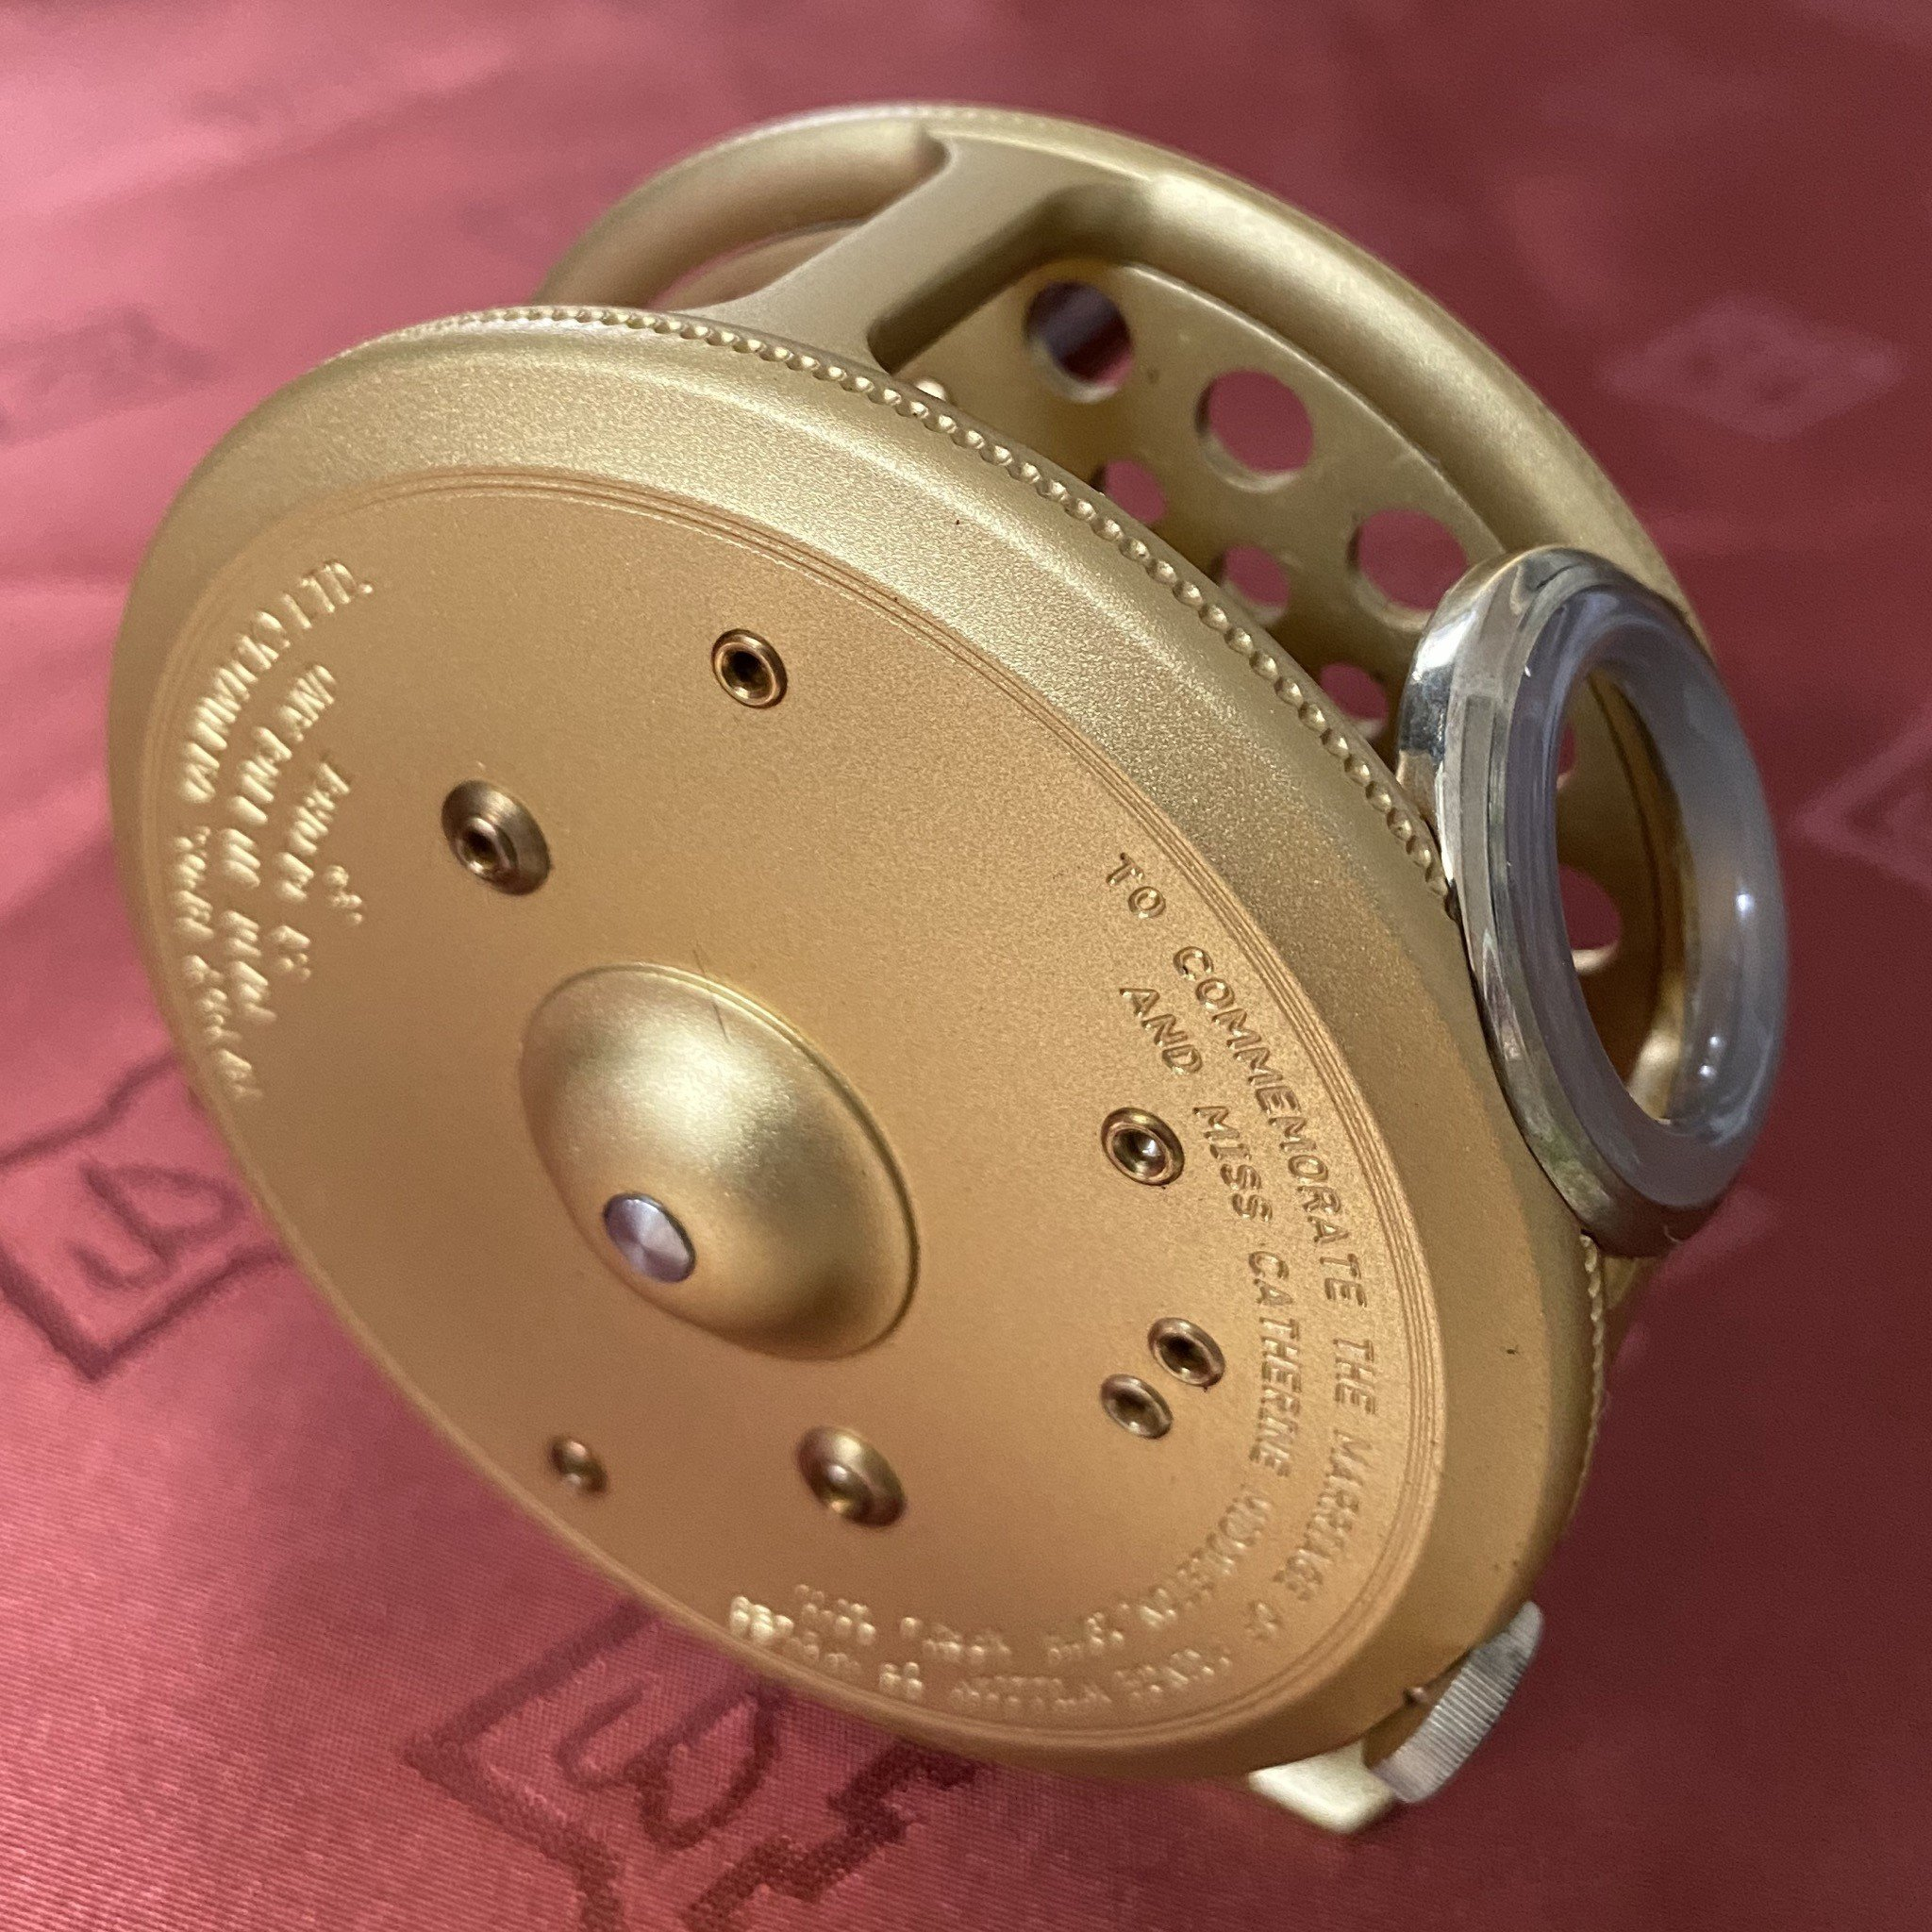 St. George The Royal Wedding Commemorative 3 inch Fly Reel MADE IN ENGLAND - LIMITED EDITION image 1